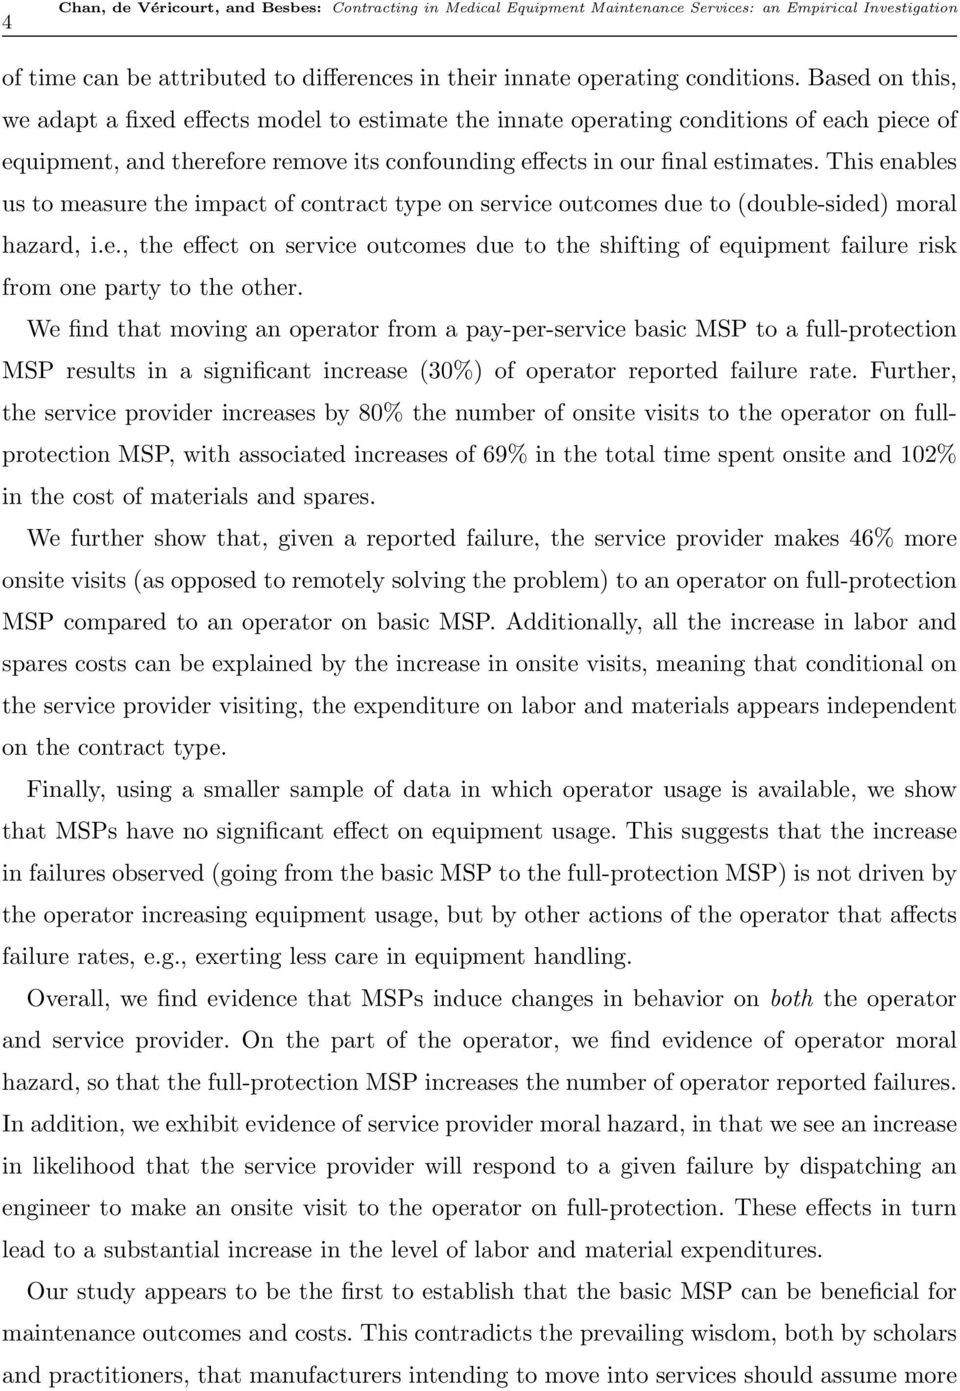 This enables us to measure the impact of contract type on service outcomes due to (double-sided) moral hazard, i.e., the effect on service outcomes due to the shifting of equipment failure risk from one party to the other.